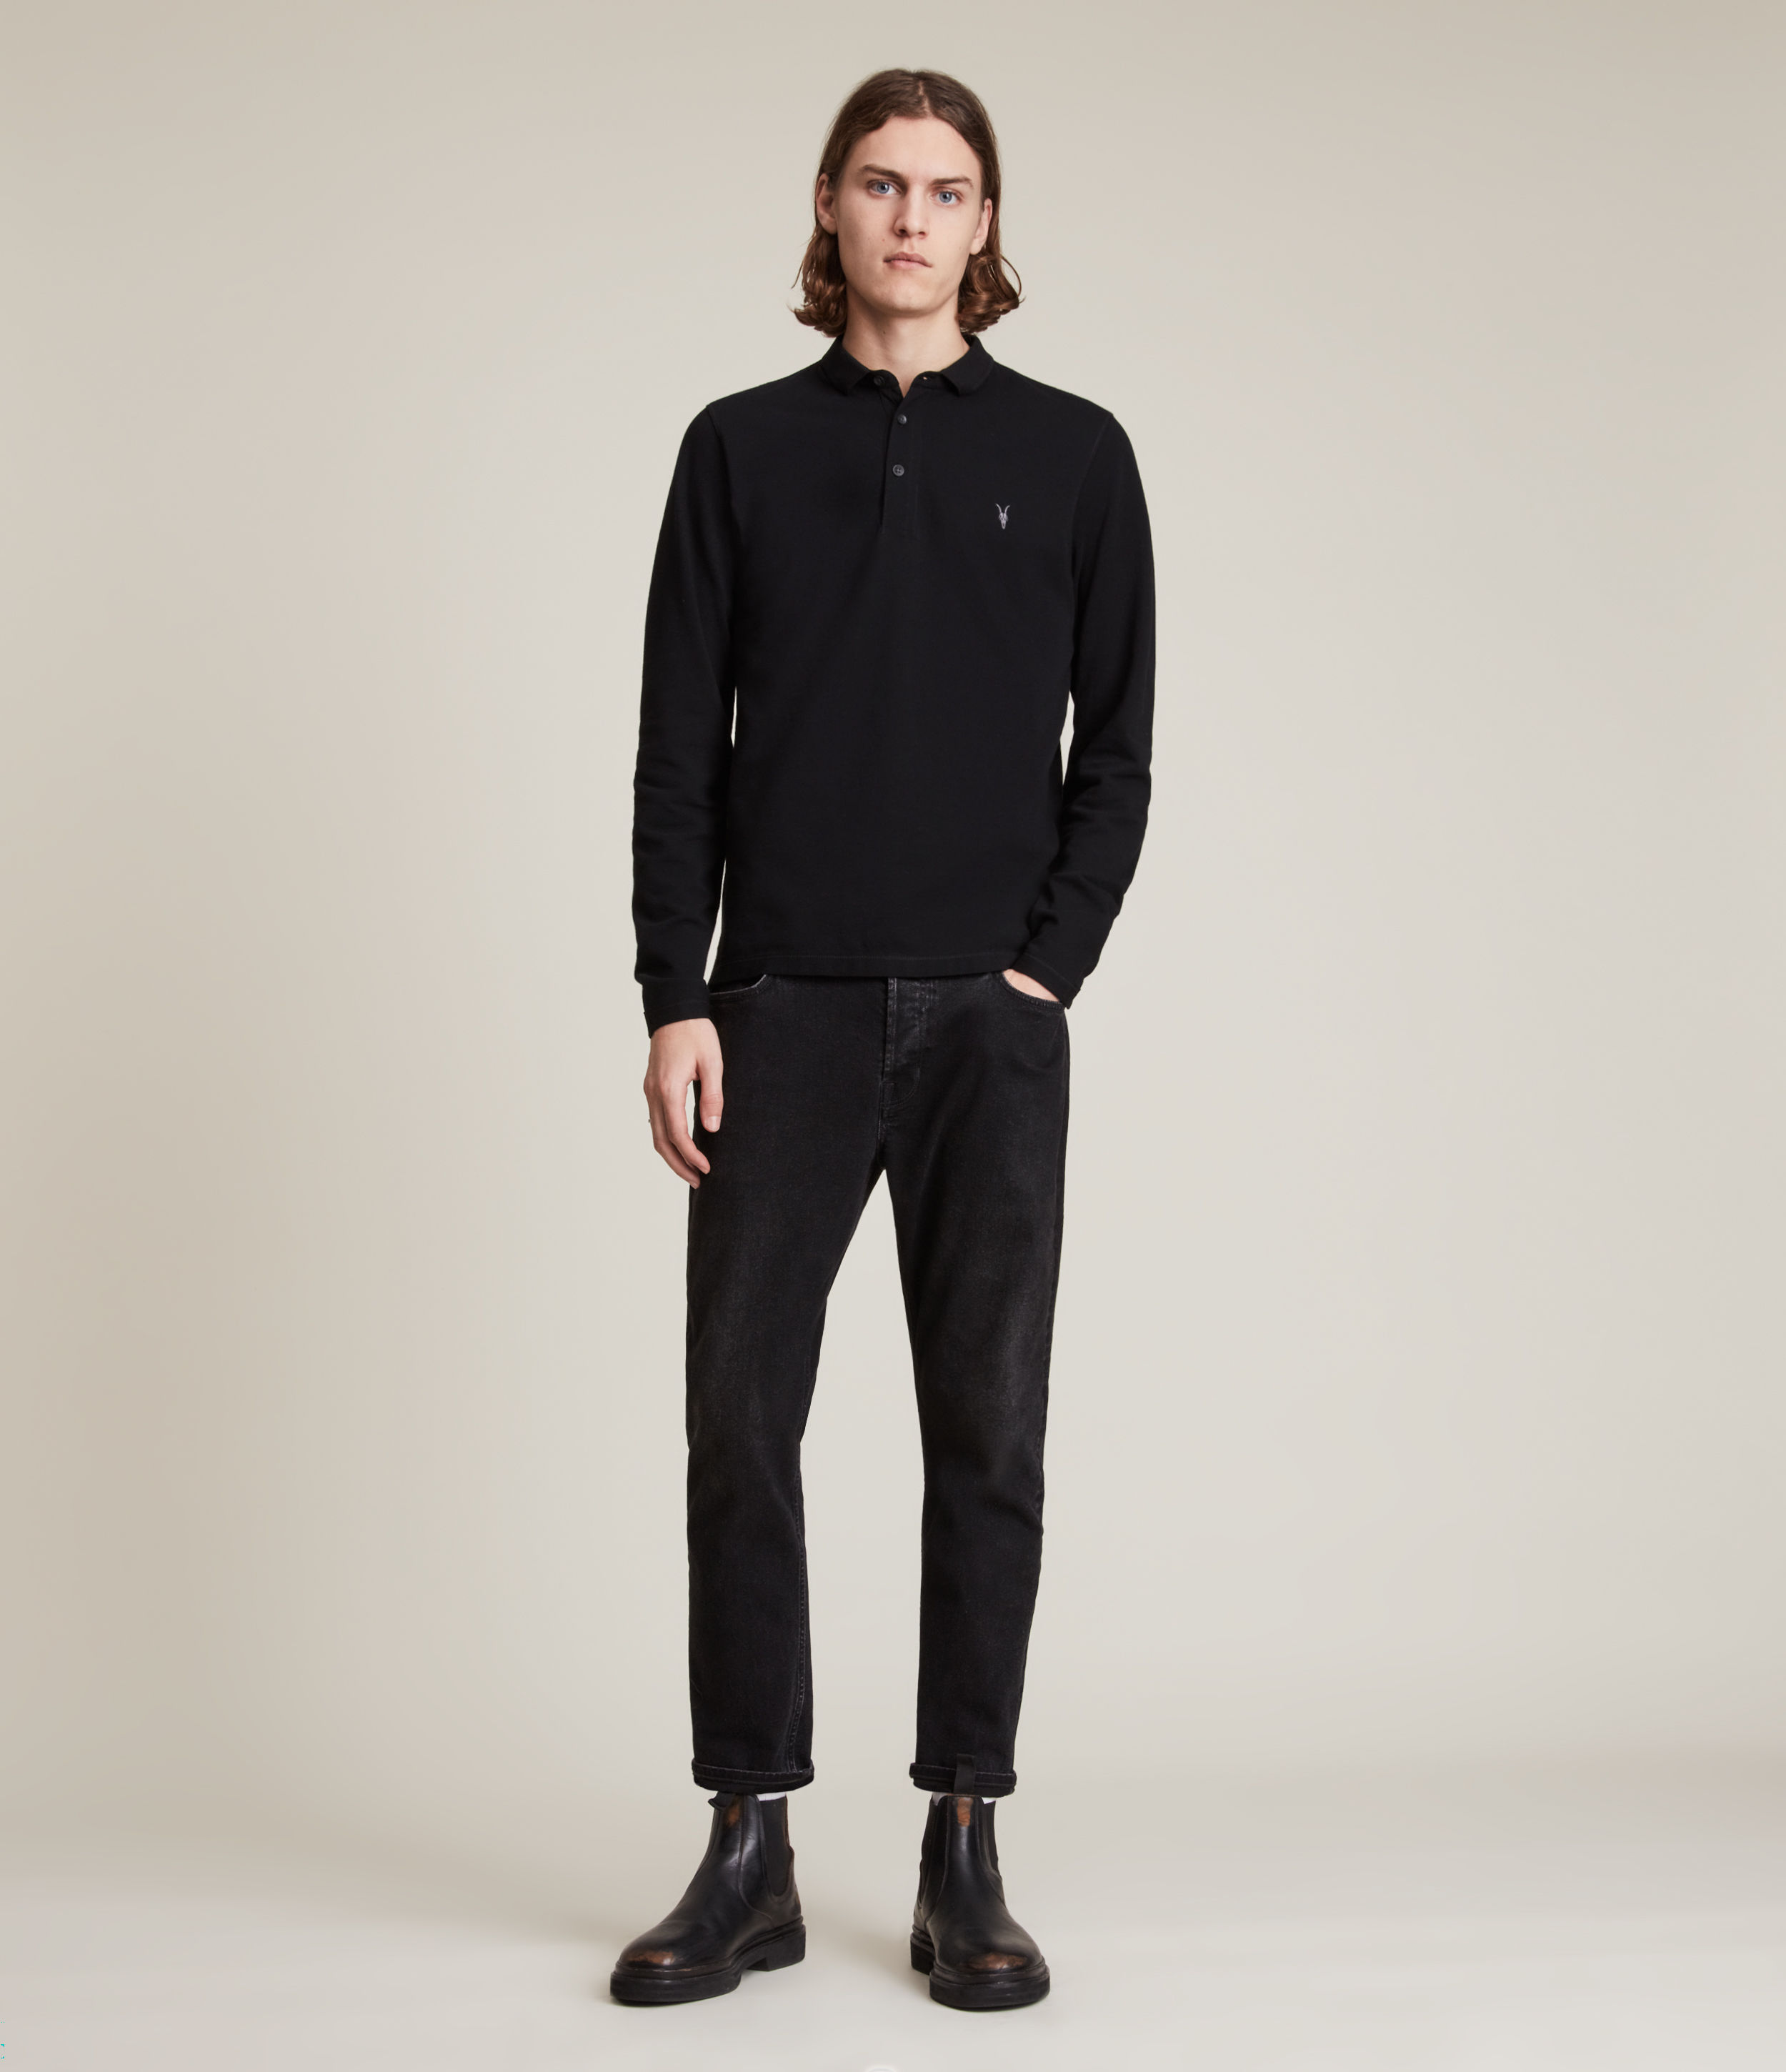 AllSaints Men's Cotton Slim Fit Reform Long Sleeve Polo Shirt, Black, Size: S